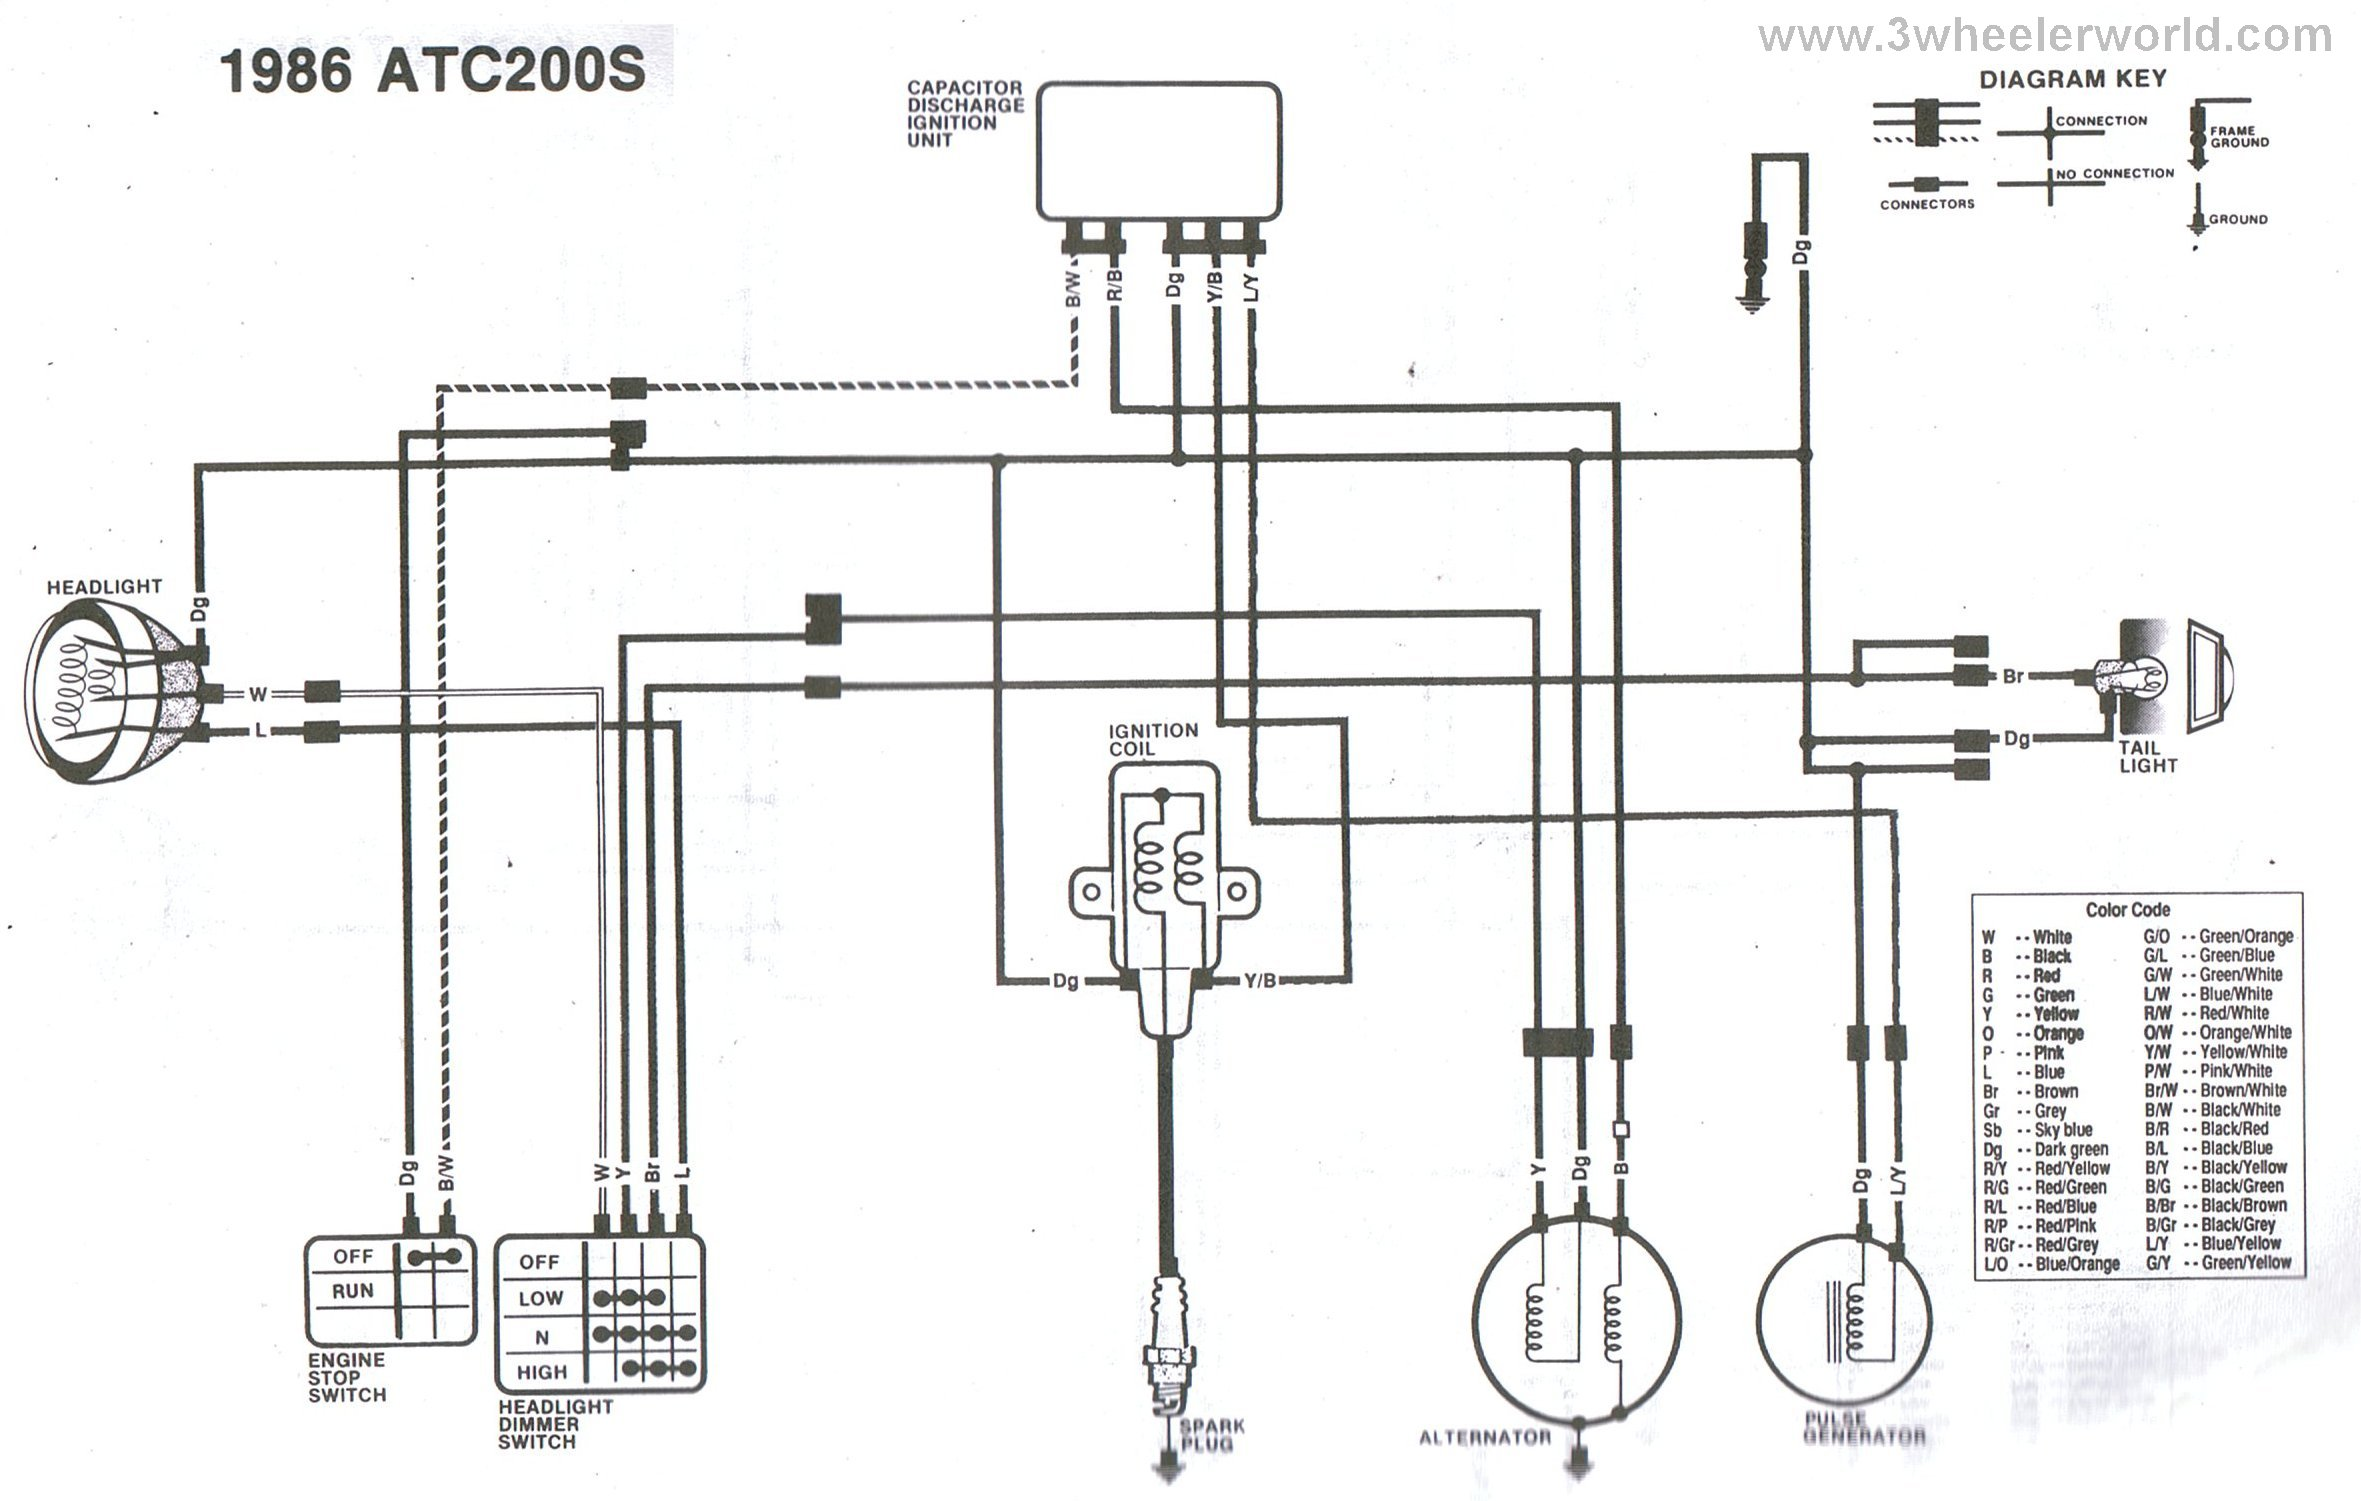 ATC200Sx86 100 [ wiring diagram suzuki quadrunner ] patent us7522213 shock atc 70 wiring diagram at aneh.co